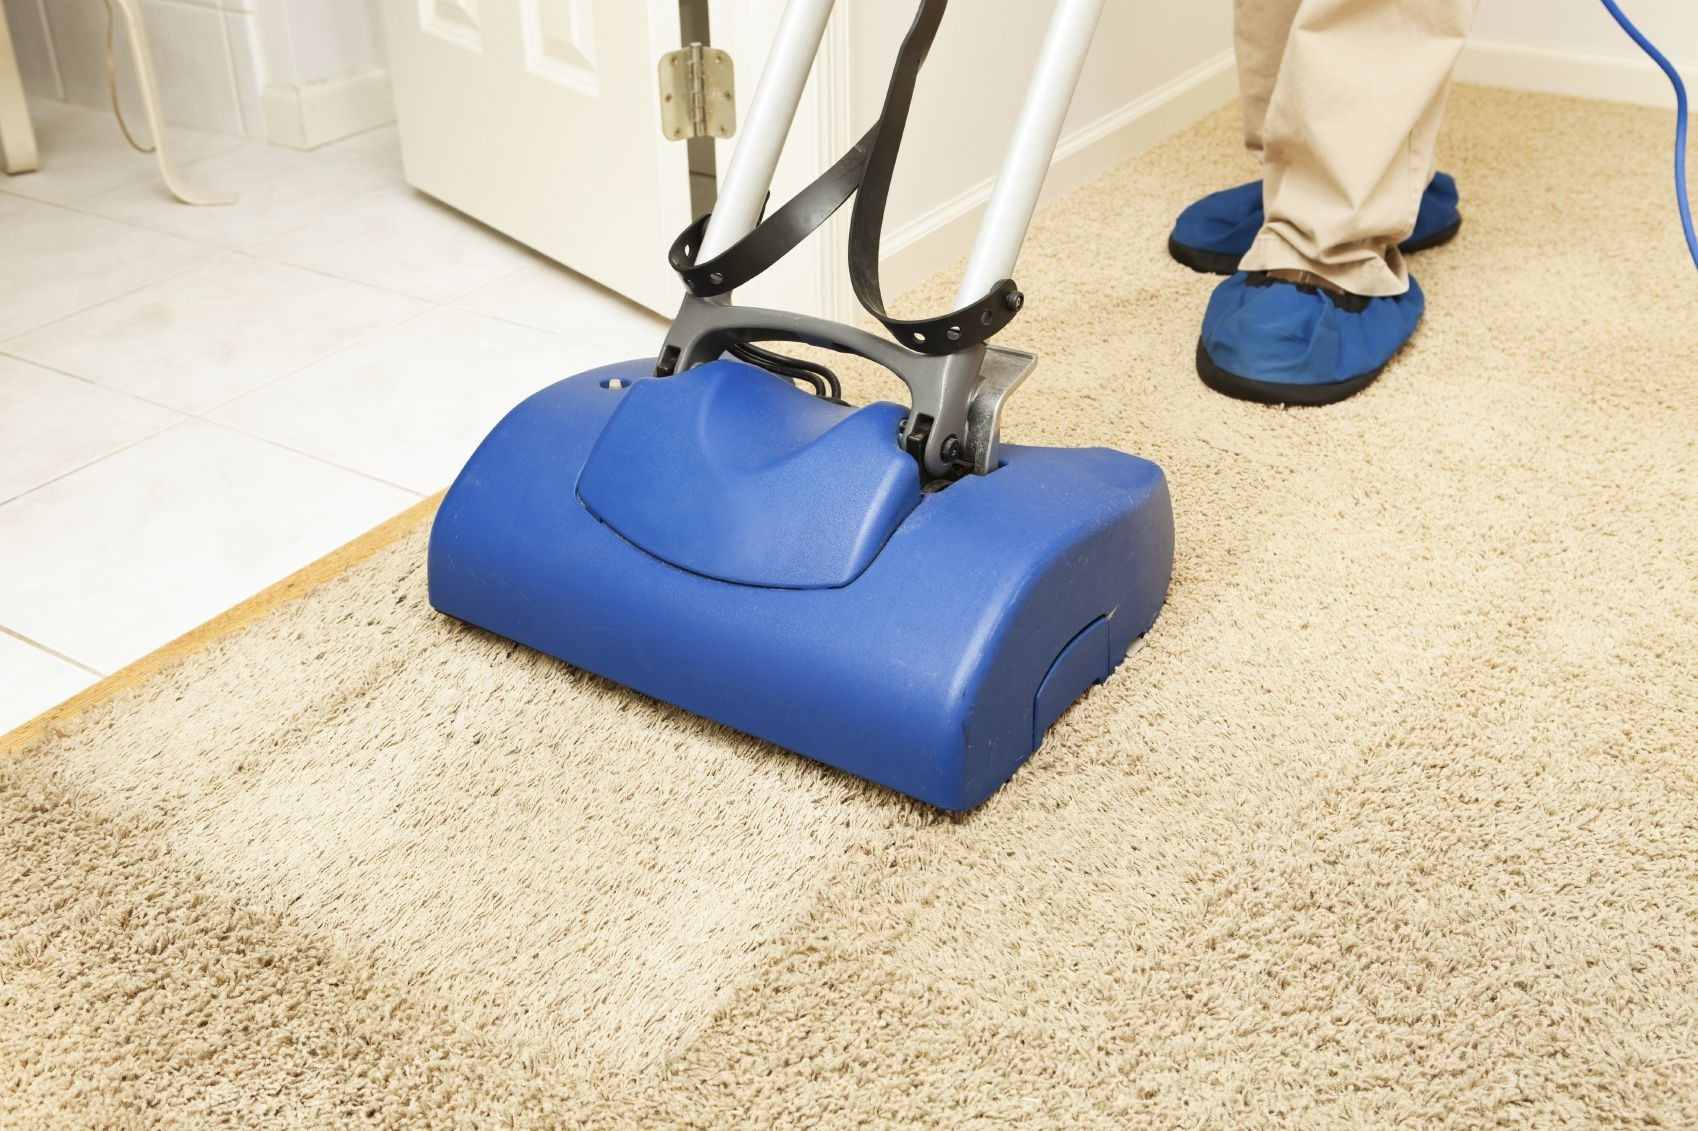 hardwood floor refinishing in tampa of 16 new carpet cleaning service stock dizpos com in carpet cleaning service awesome find the best affordable top class rug cleaning services in topeka images